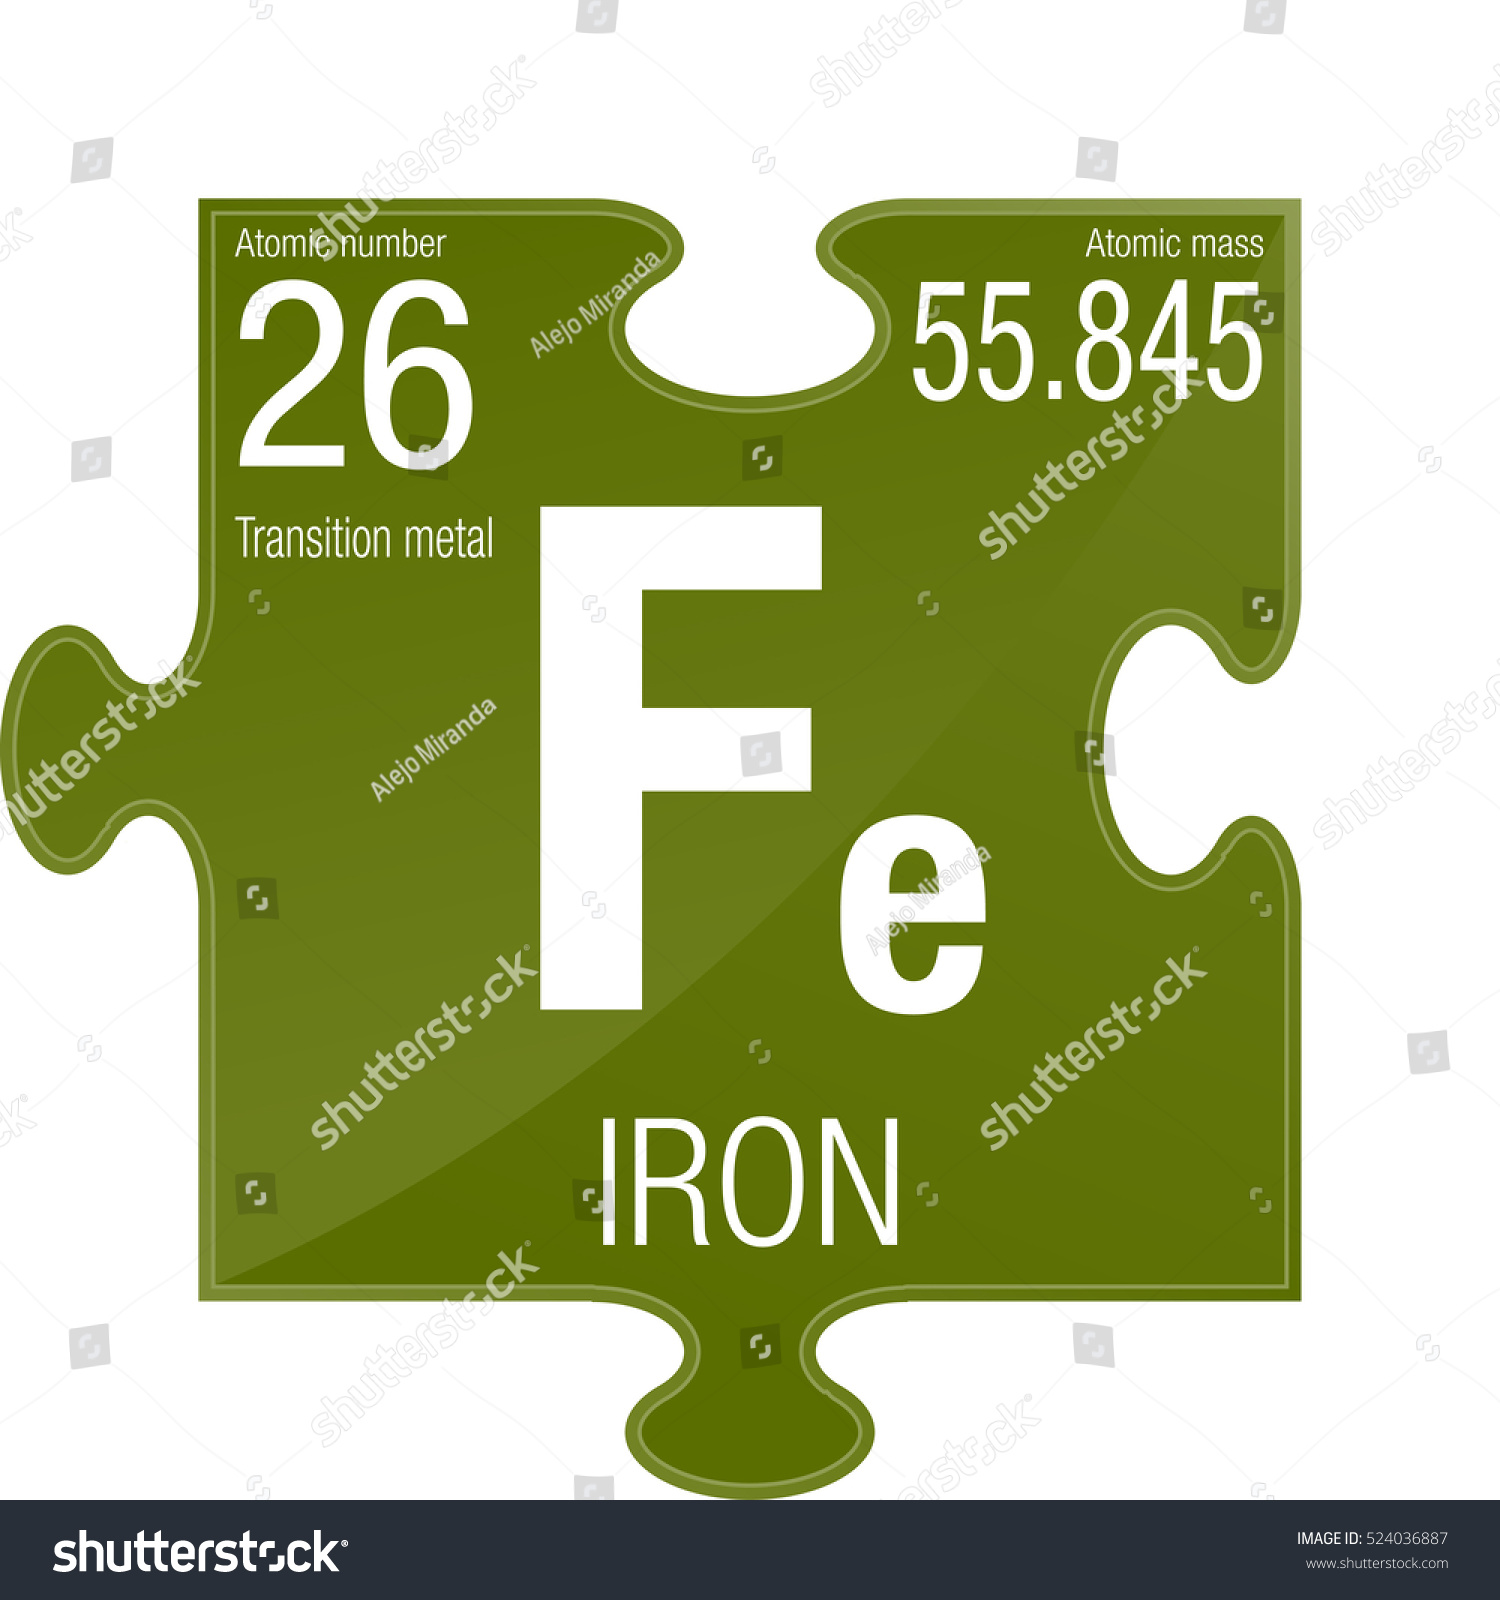 Periodic table of elements iron image collections periodic table periodic table of elements iron image collections periodic table iron symbol in periodic table images periodic gamestrikefo Choice Image